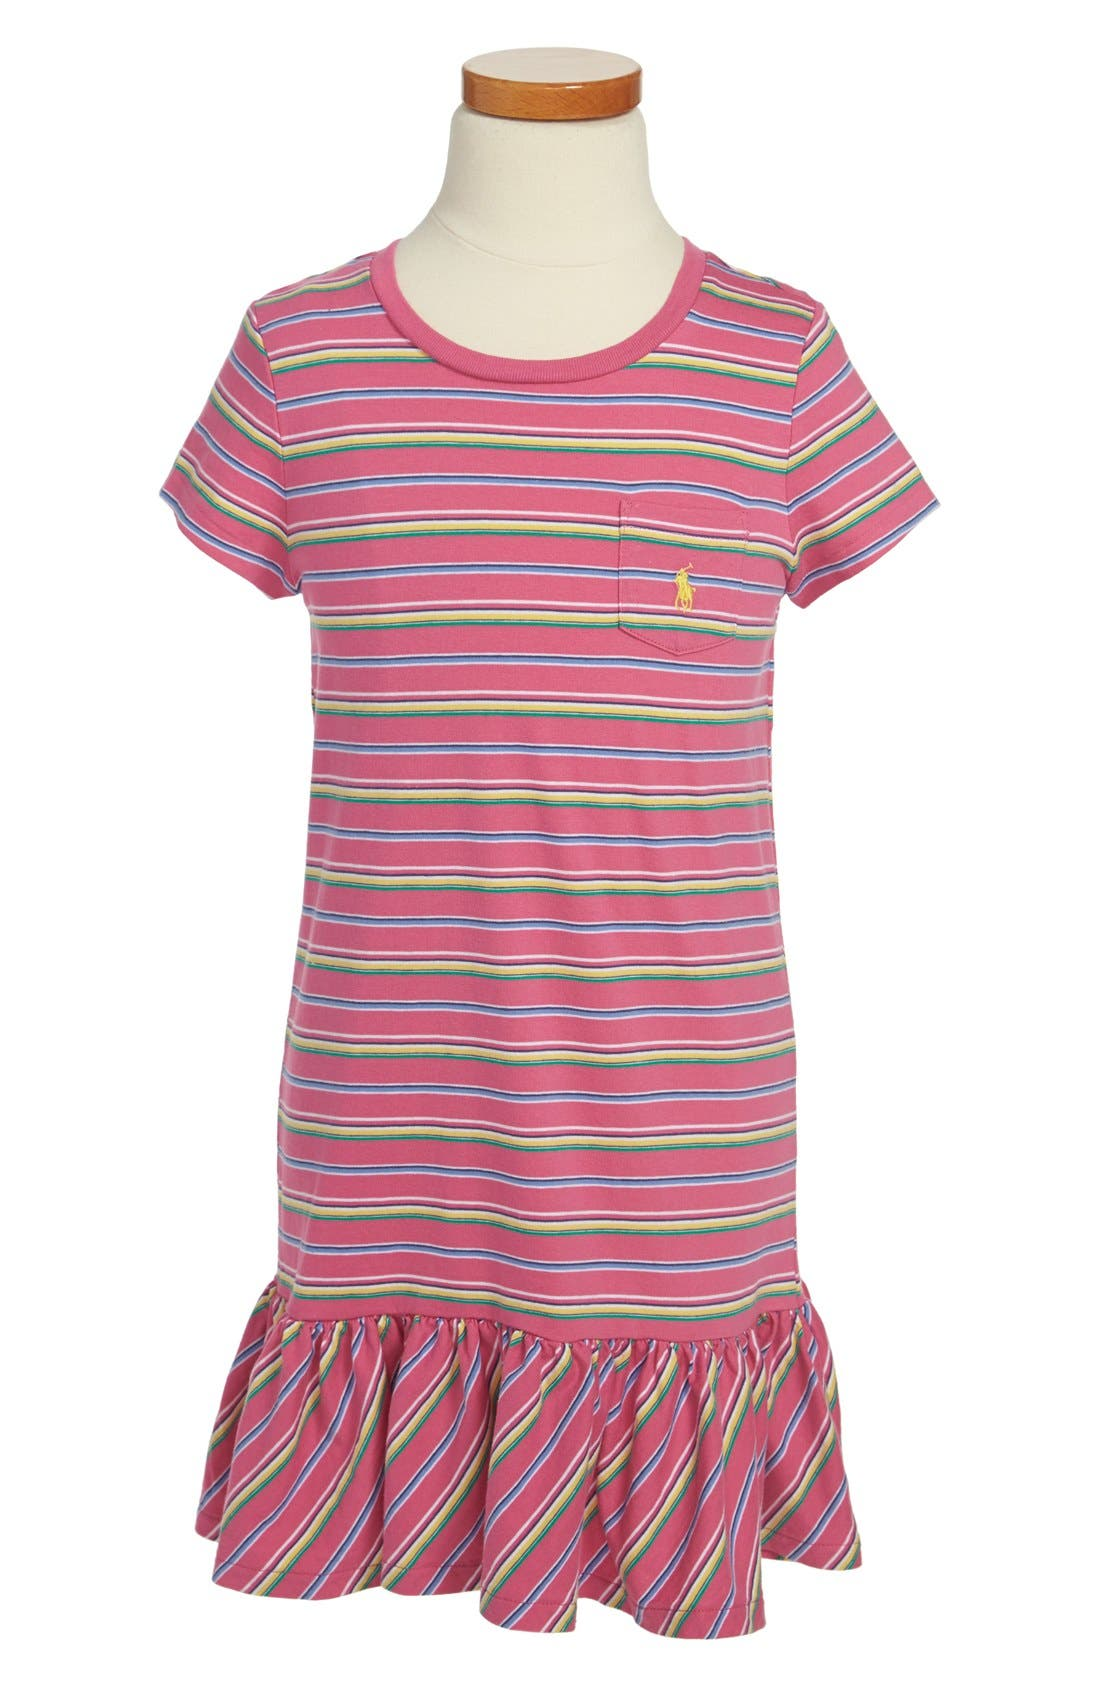 Alternate Image 1 Selected - Ralph Lauren Stripe T-Shirt Dress (Little Girls)